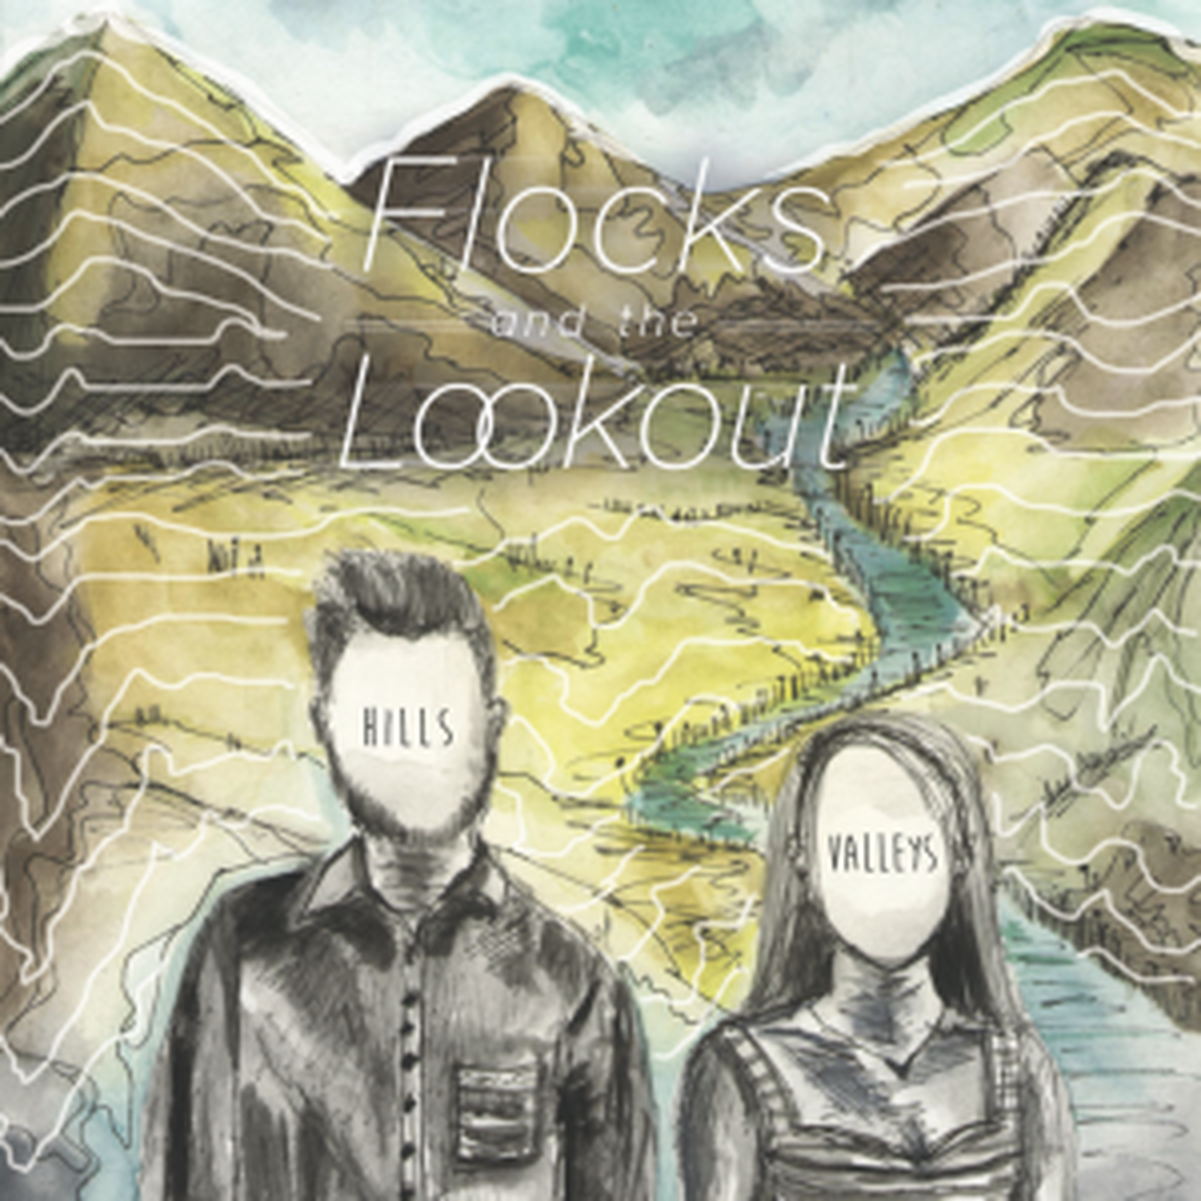 Flocks and the Lookout wiki, Flocks and the Lookout review, Flocks and the Lookout history, Flocks and the Lookout news